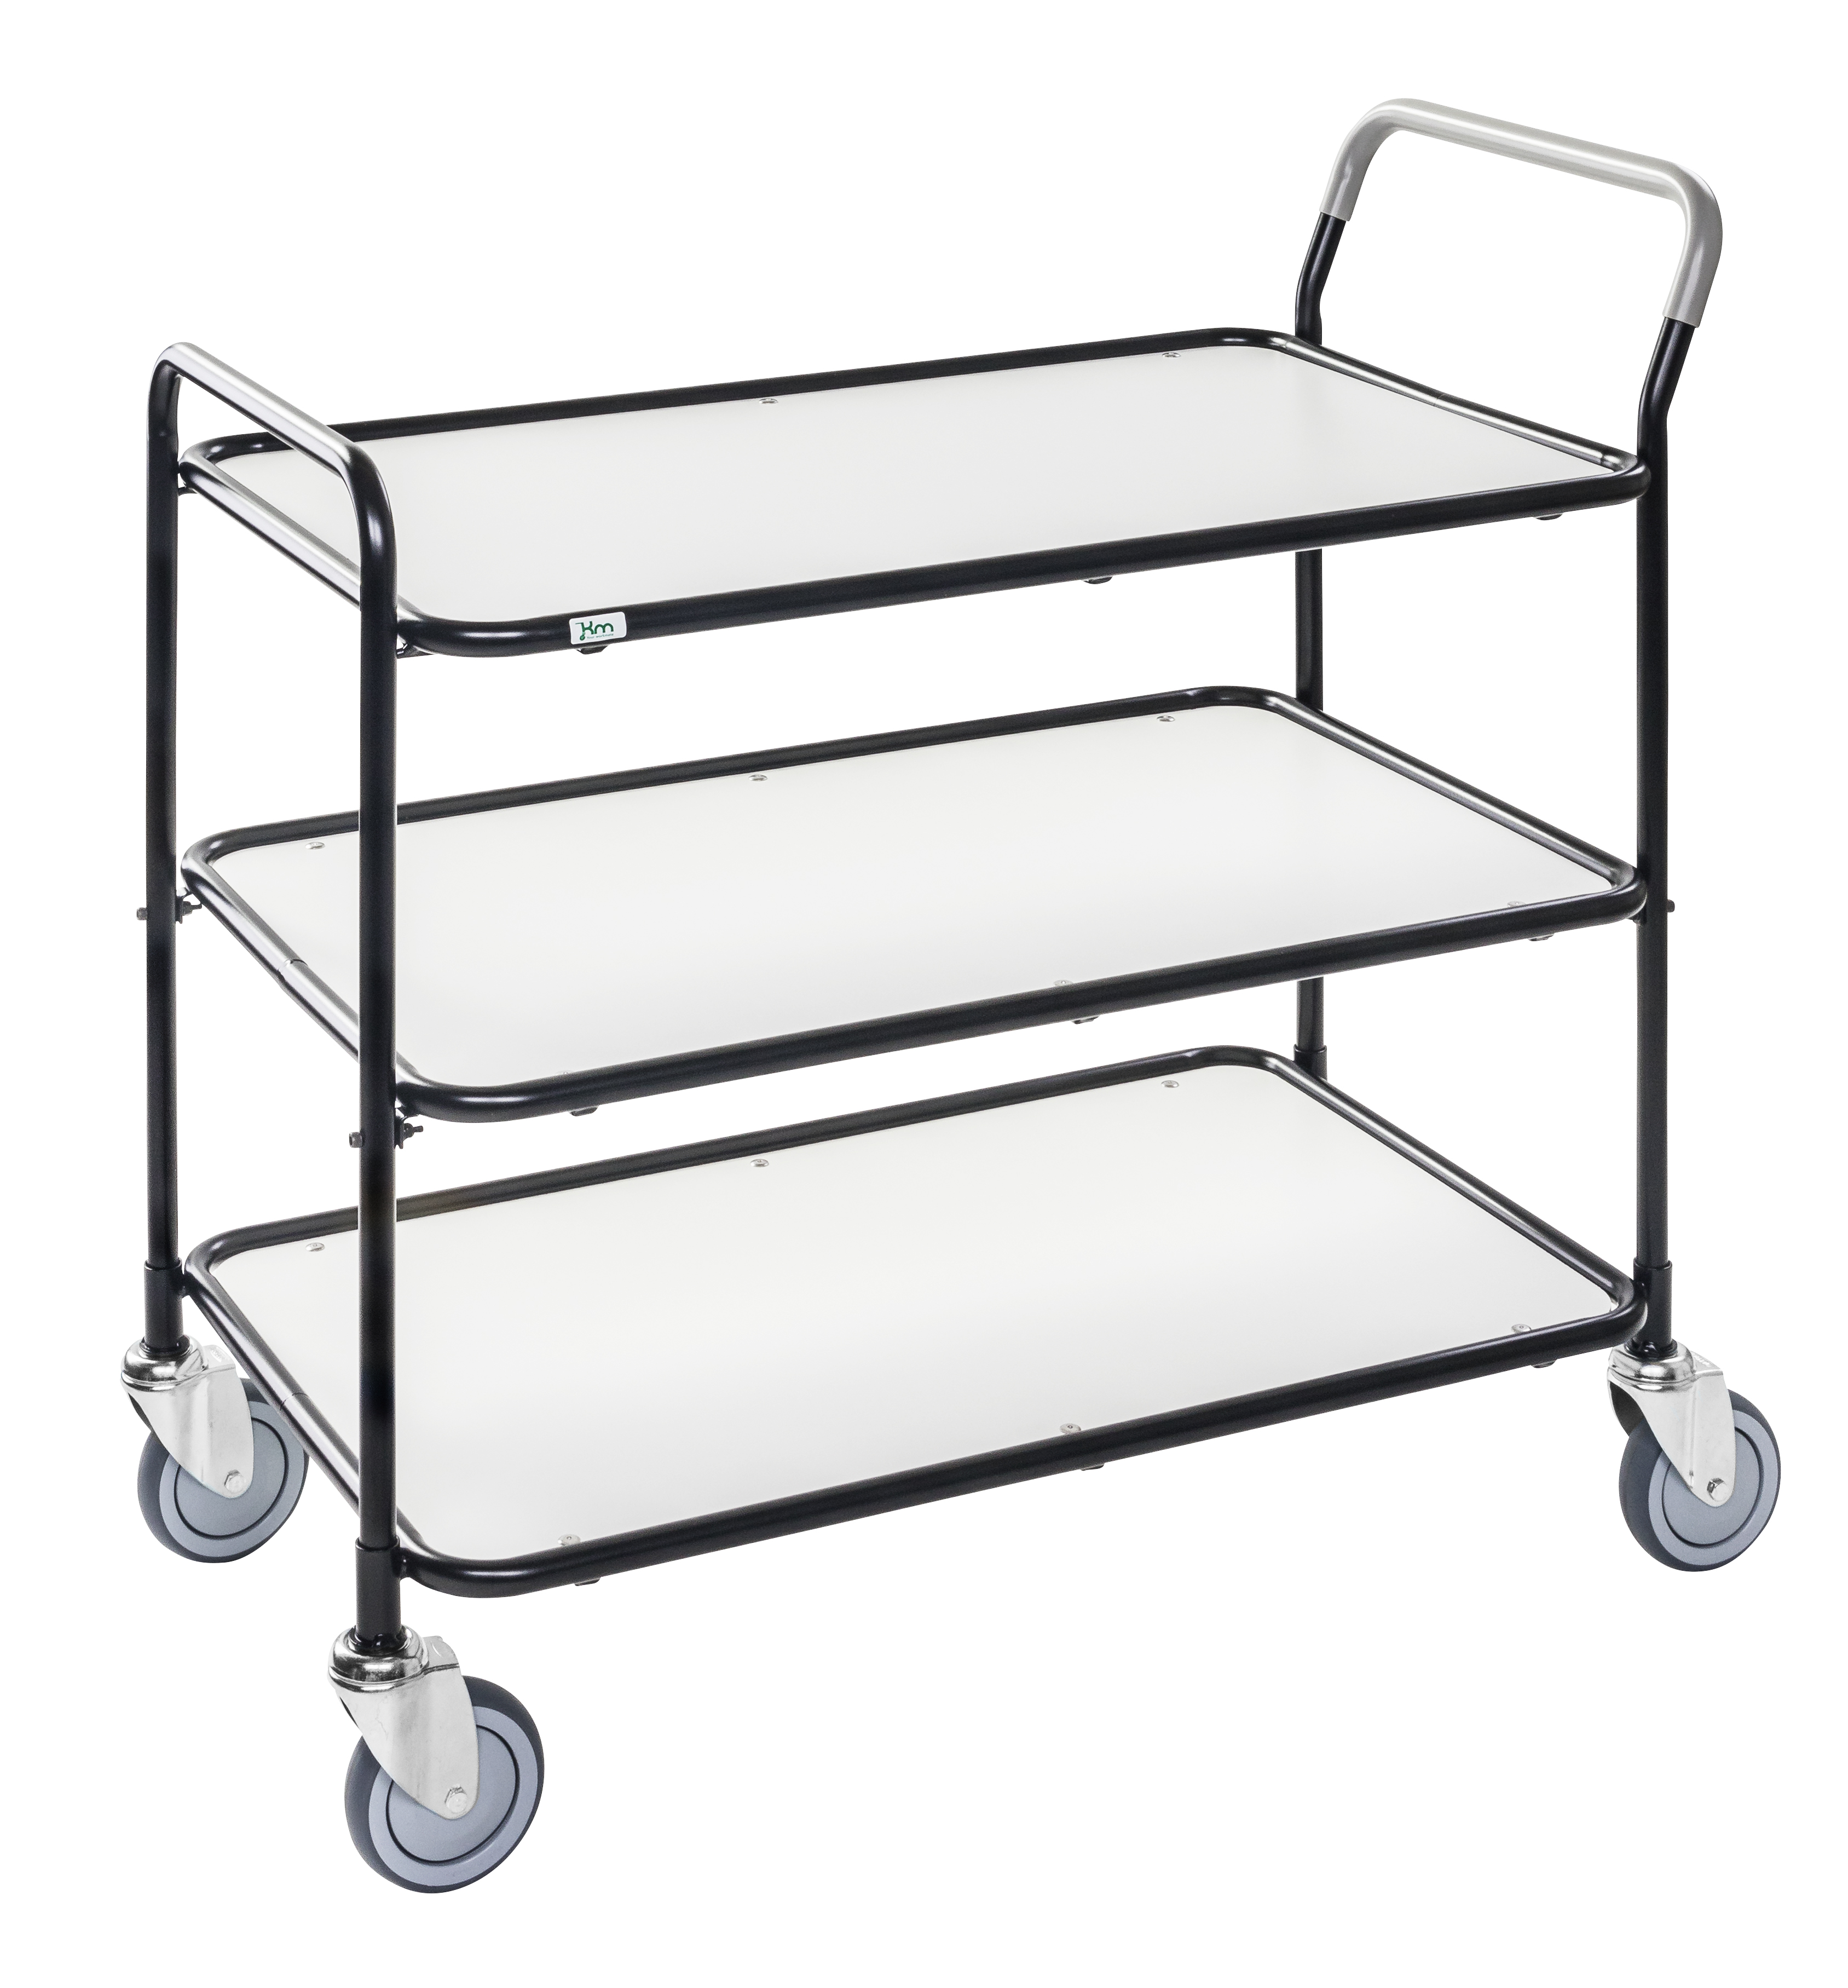 Table trolley KM30773-S6